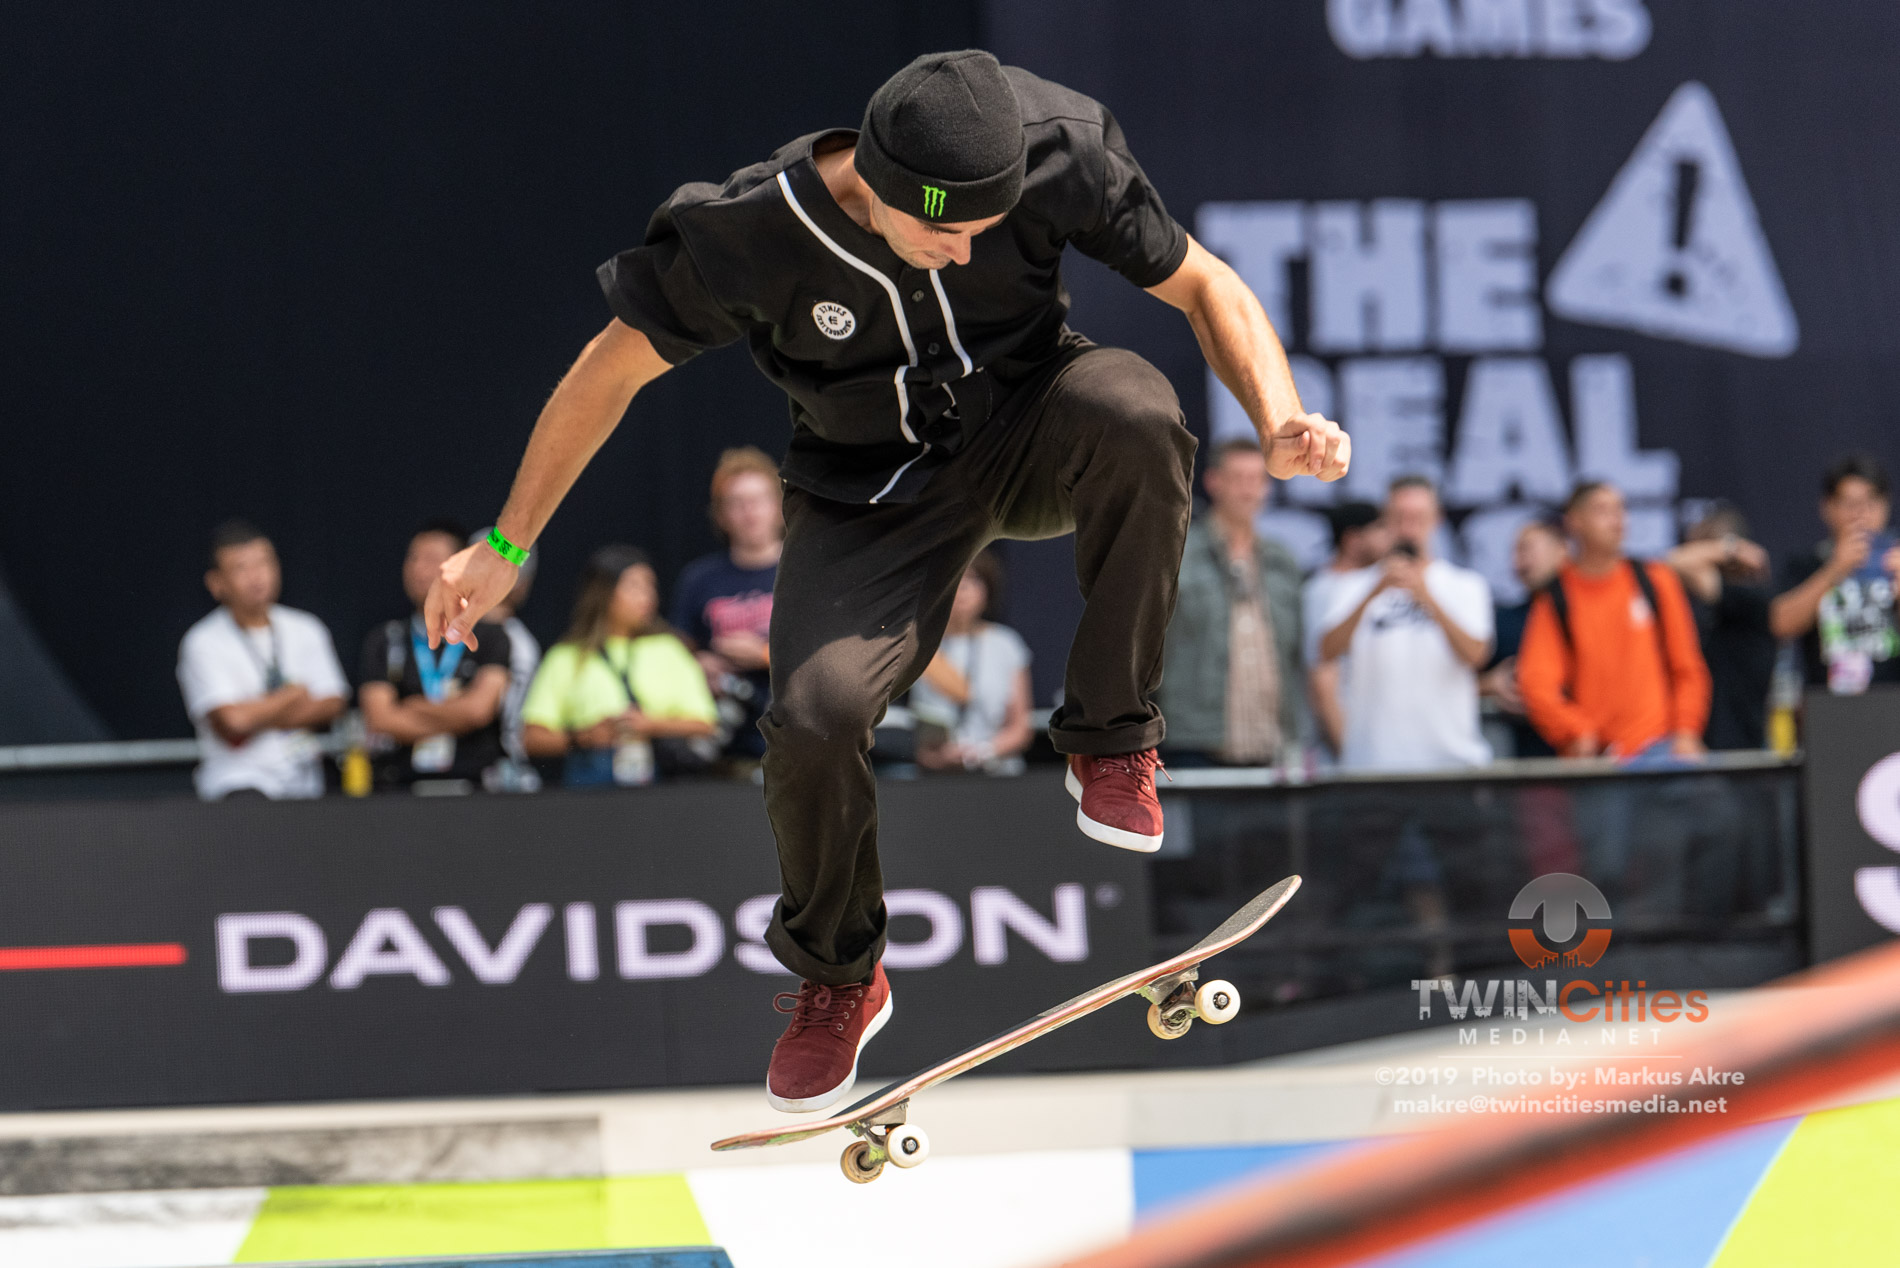 2019-X-Games-Day-4-Skateboard-Street-Best-Trick-10